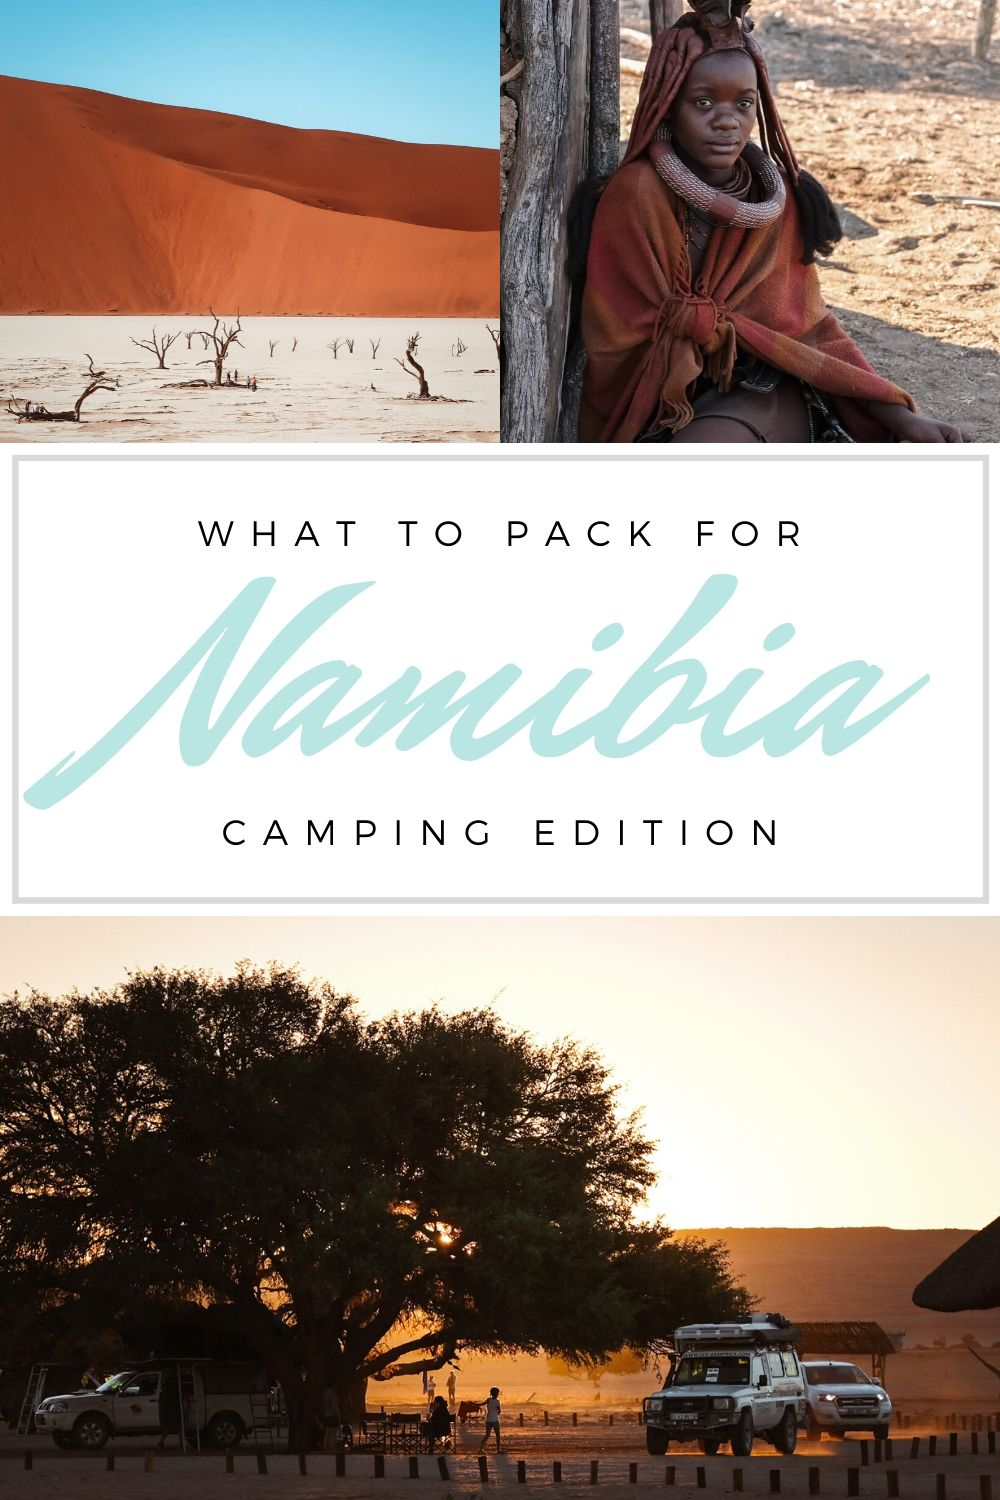 What to Pack for Namibia for Camping in the Desert